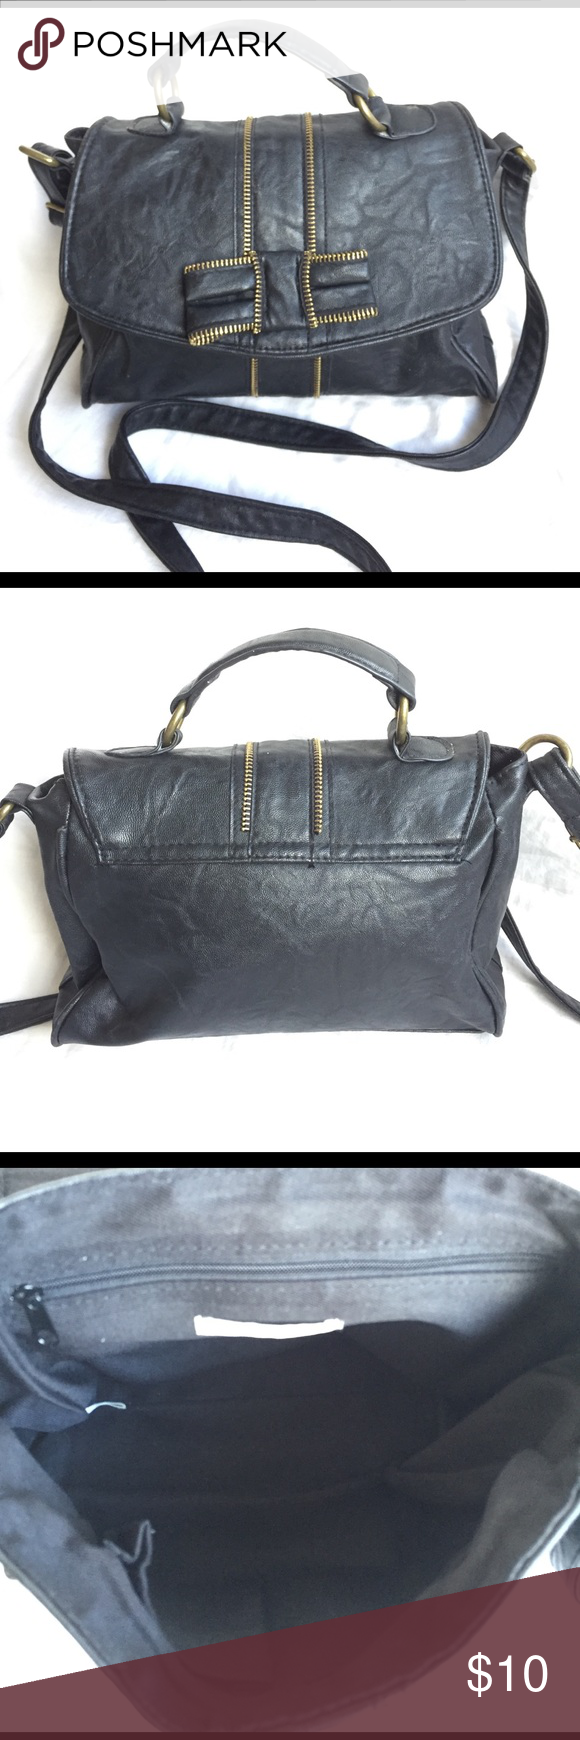 Charlotte Russe Purse Good condition Charlotte Russe purse. Magnetic snap closure. Charlotte Russe Bags